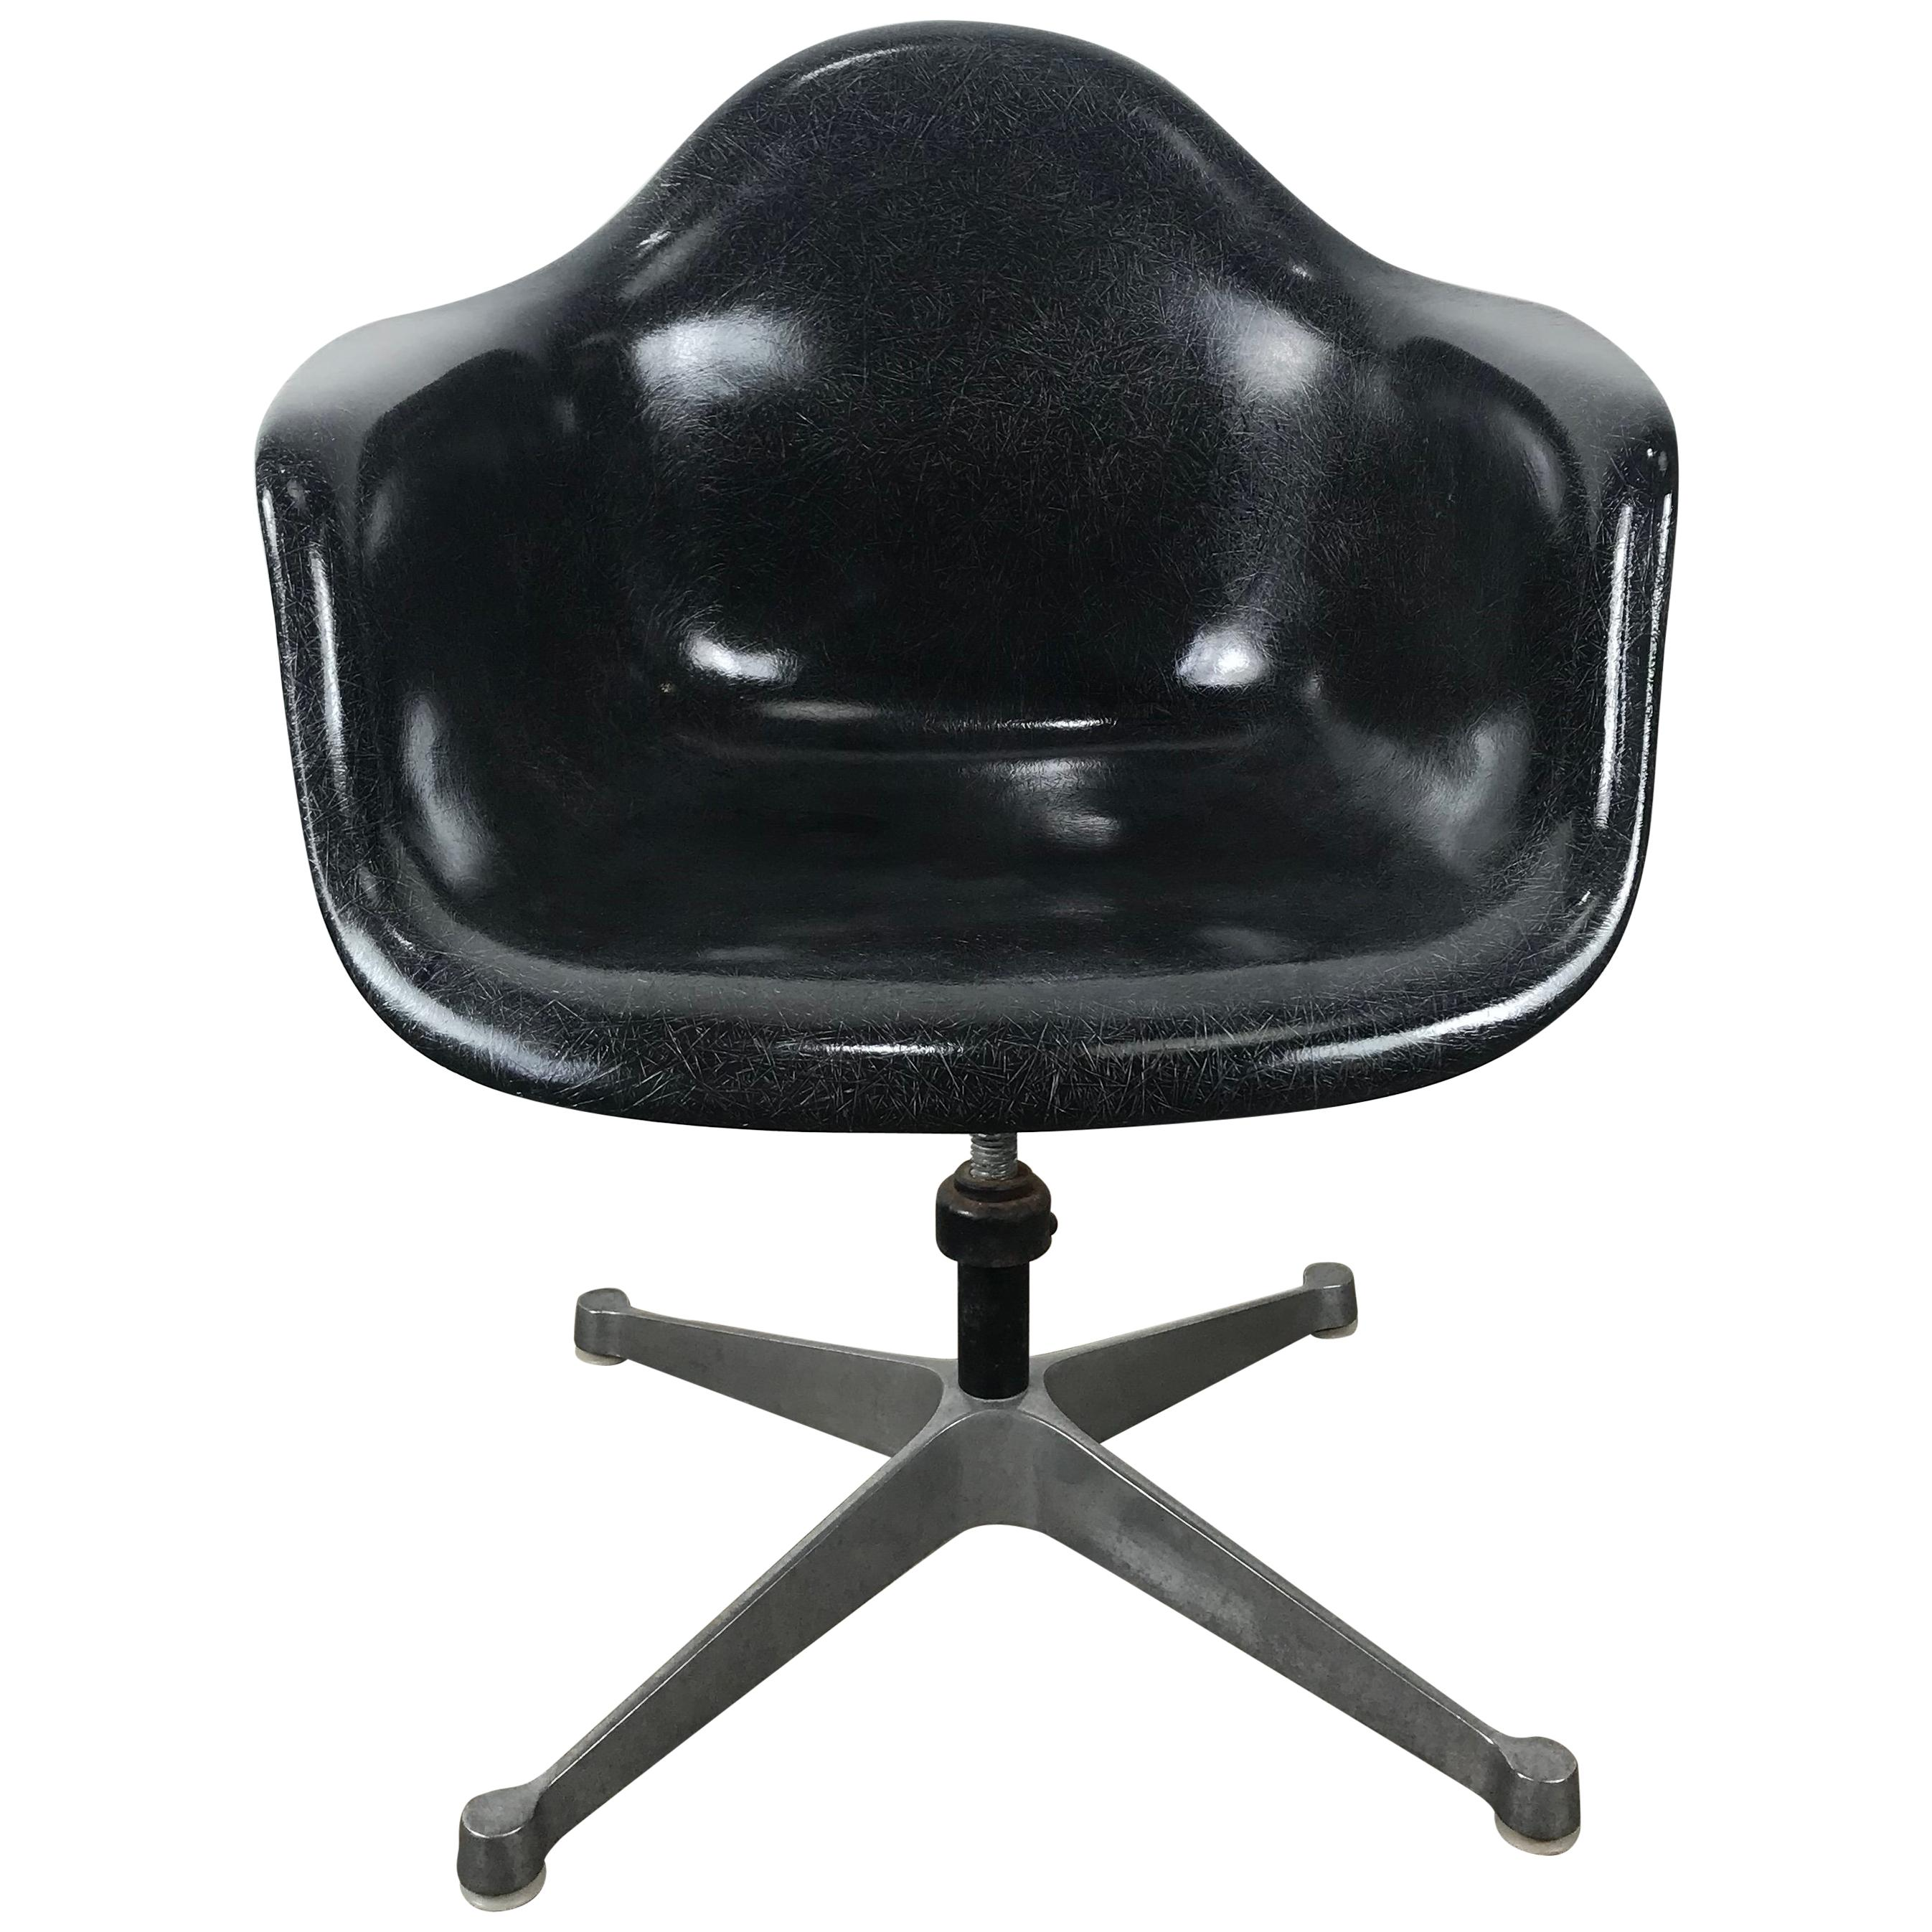 black eames chair red desk canada charles and ray furniture 400 for sale at 1stdibs rare fiberglass tilt swivel arm shell aluminium base dat by